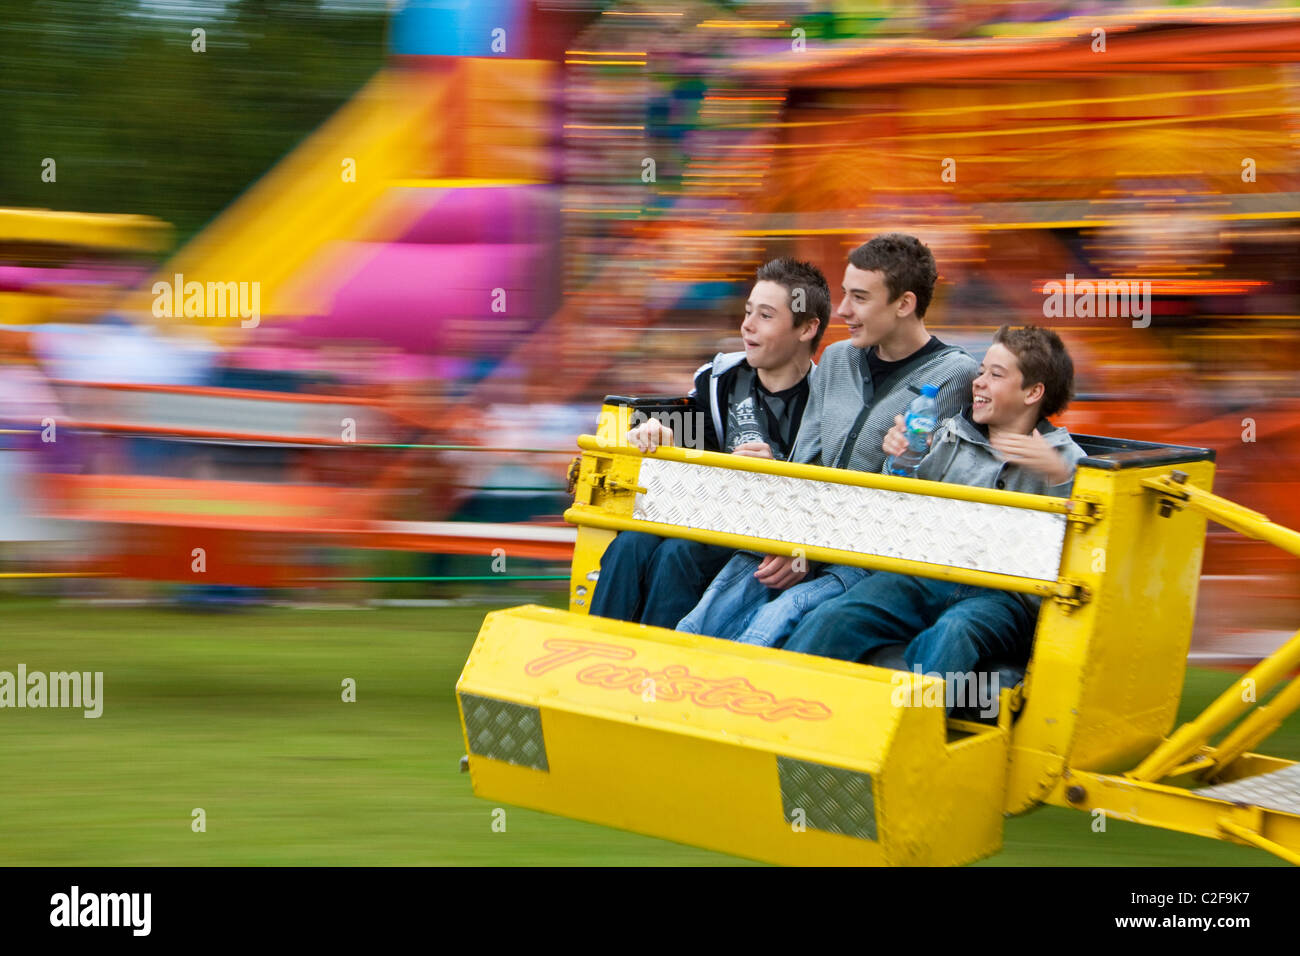 Three young boys enjoy spinning on a fairground ride - Stock Image